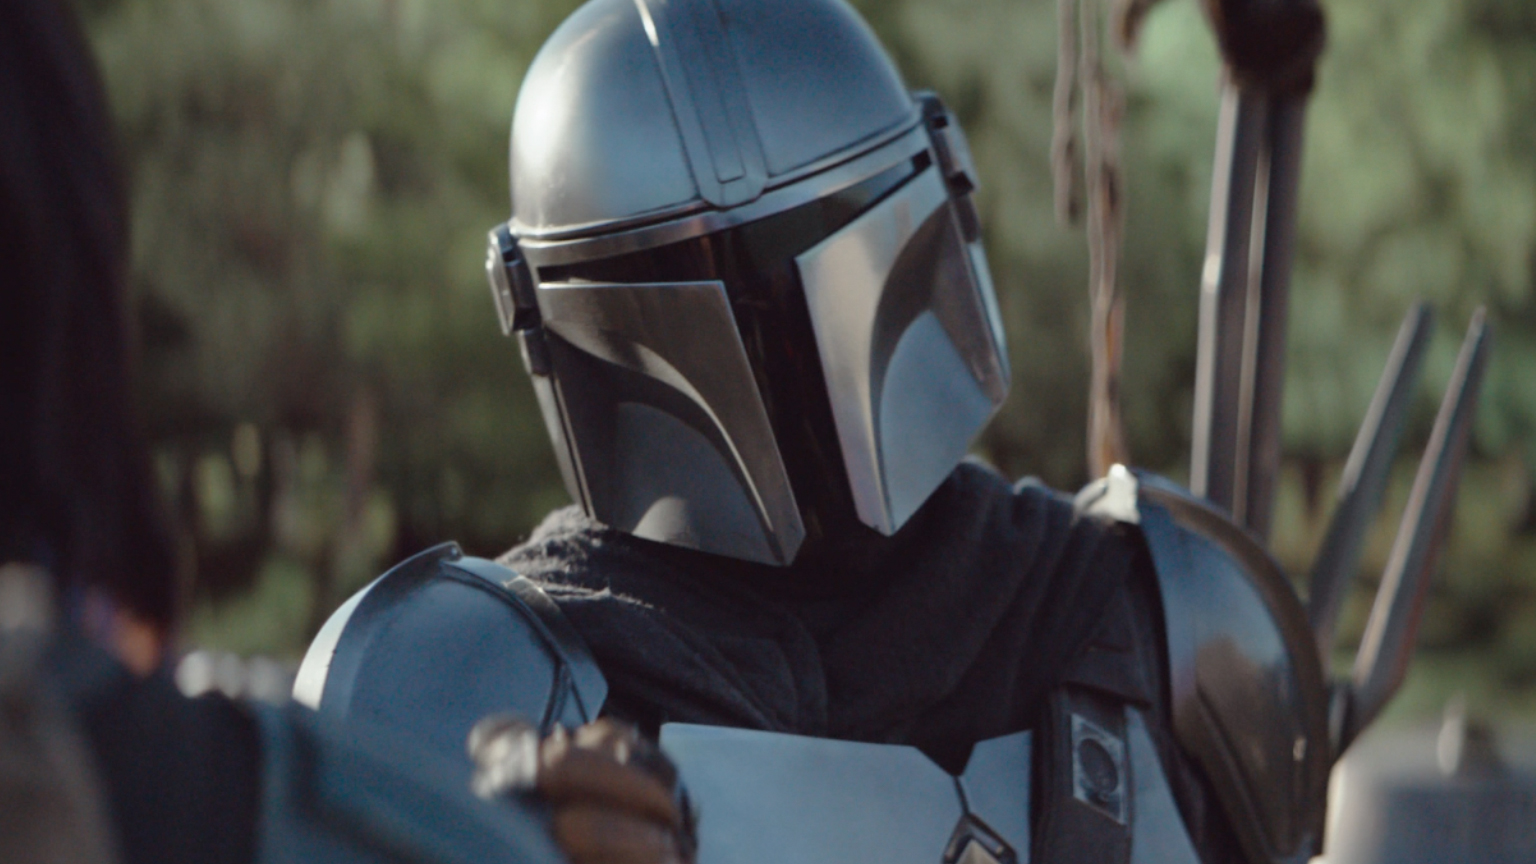 The First Big Mandalorian Spoiler Comes Straight From The Actor Himself Bgr